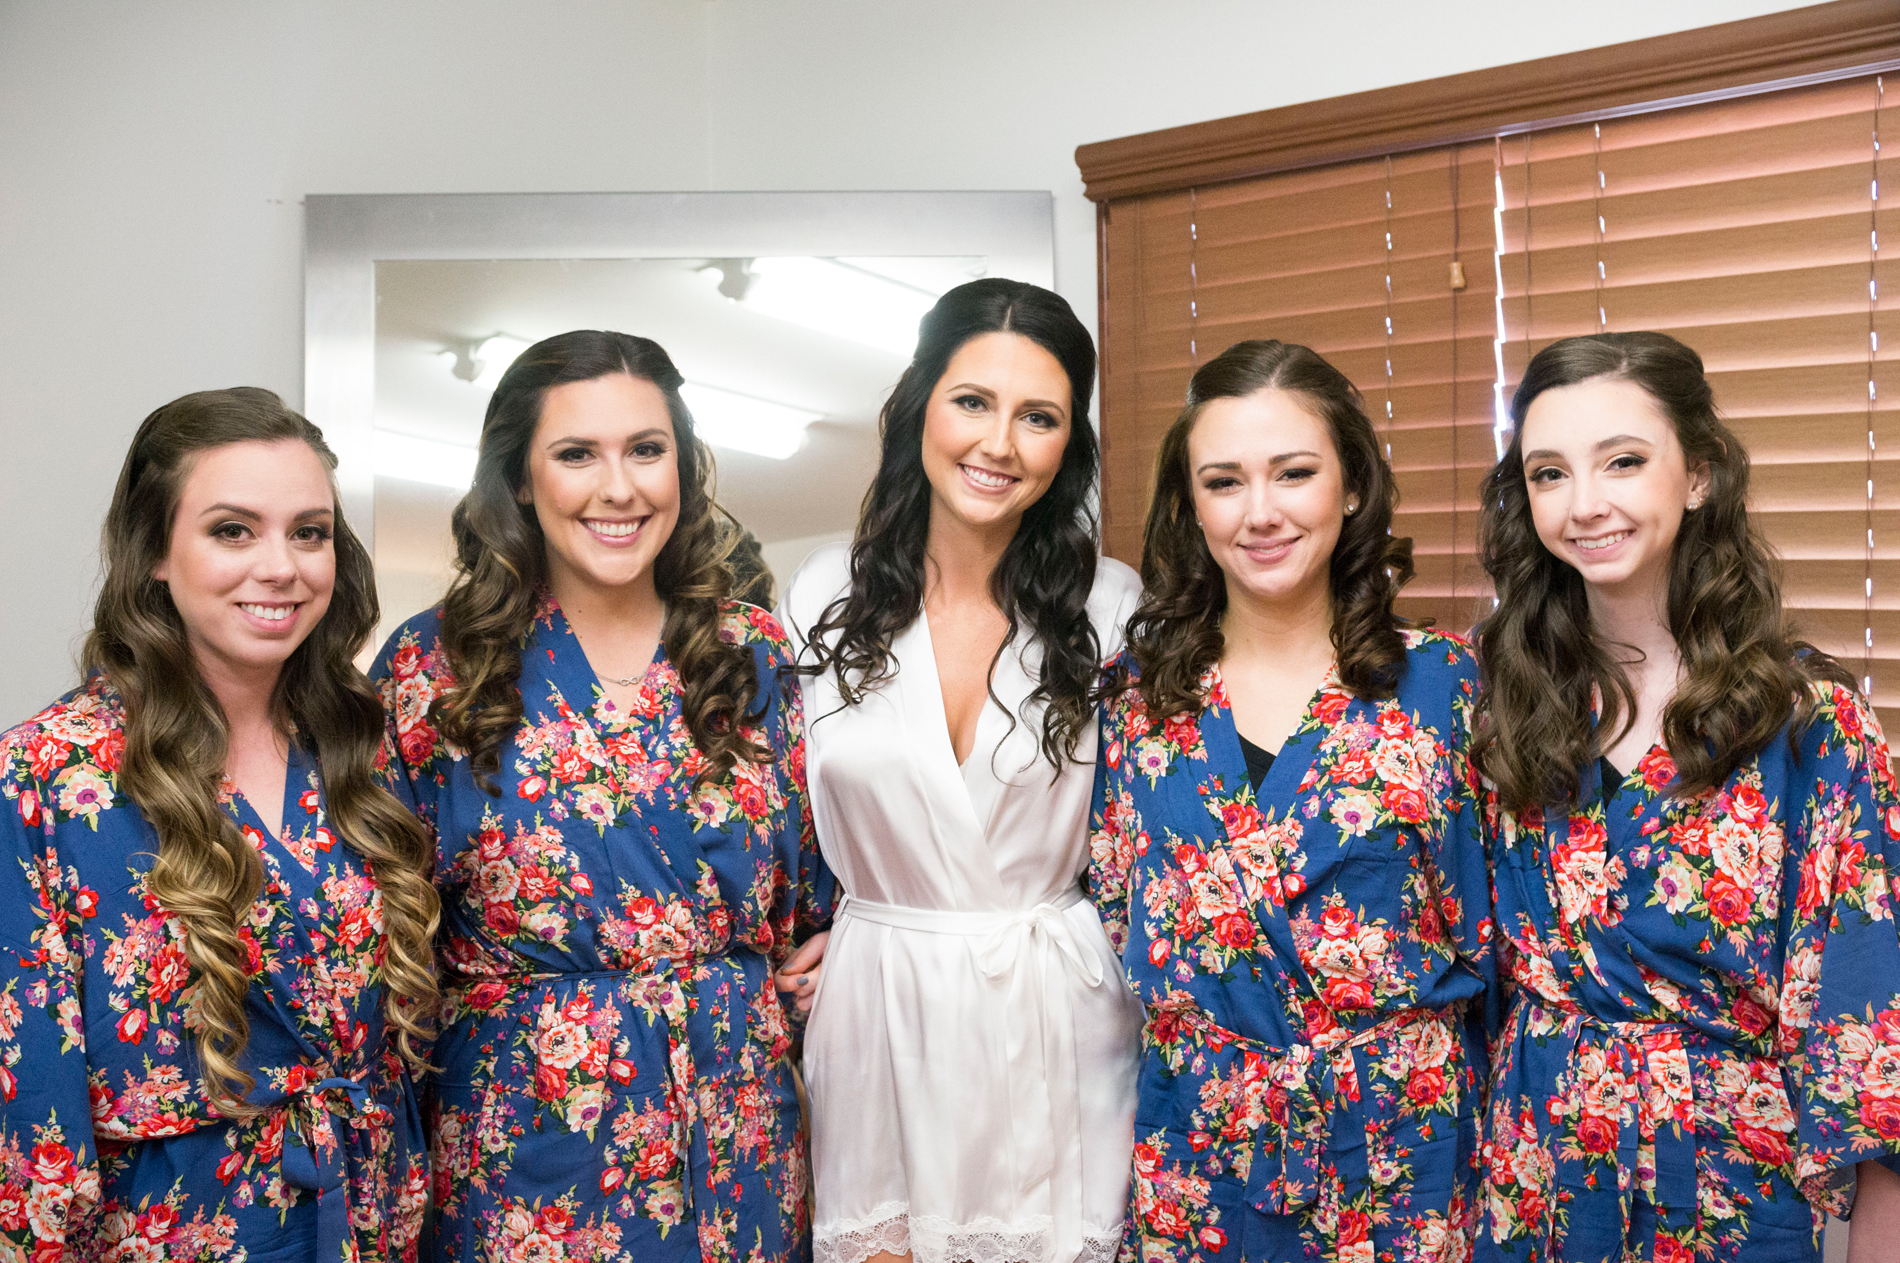 Navy Floral Bridesmaid Robes - A McCoy Equestrian Center Wedding - Peterson Design & Photography